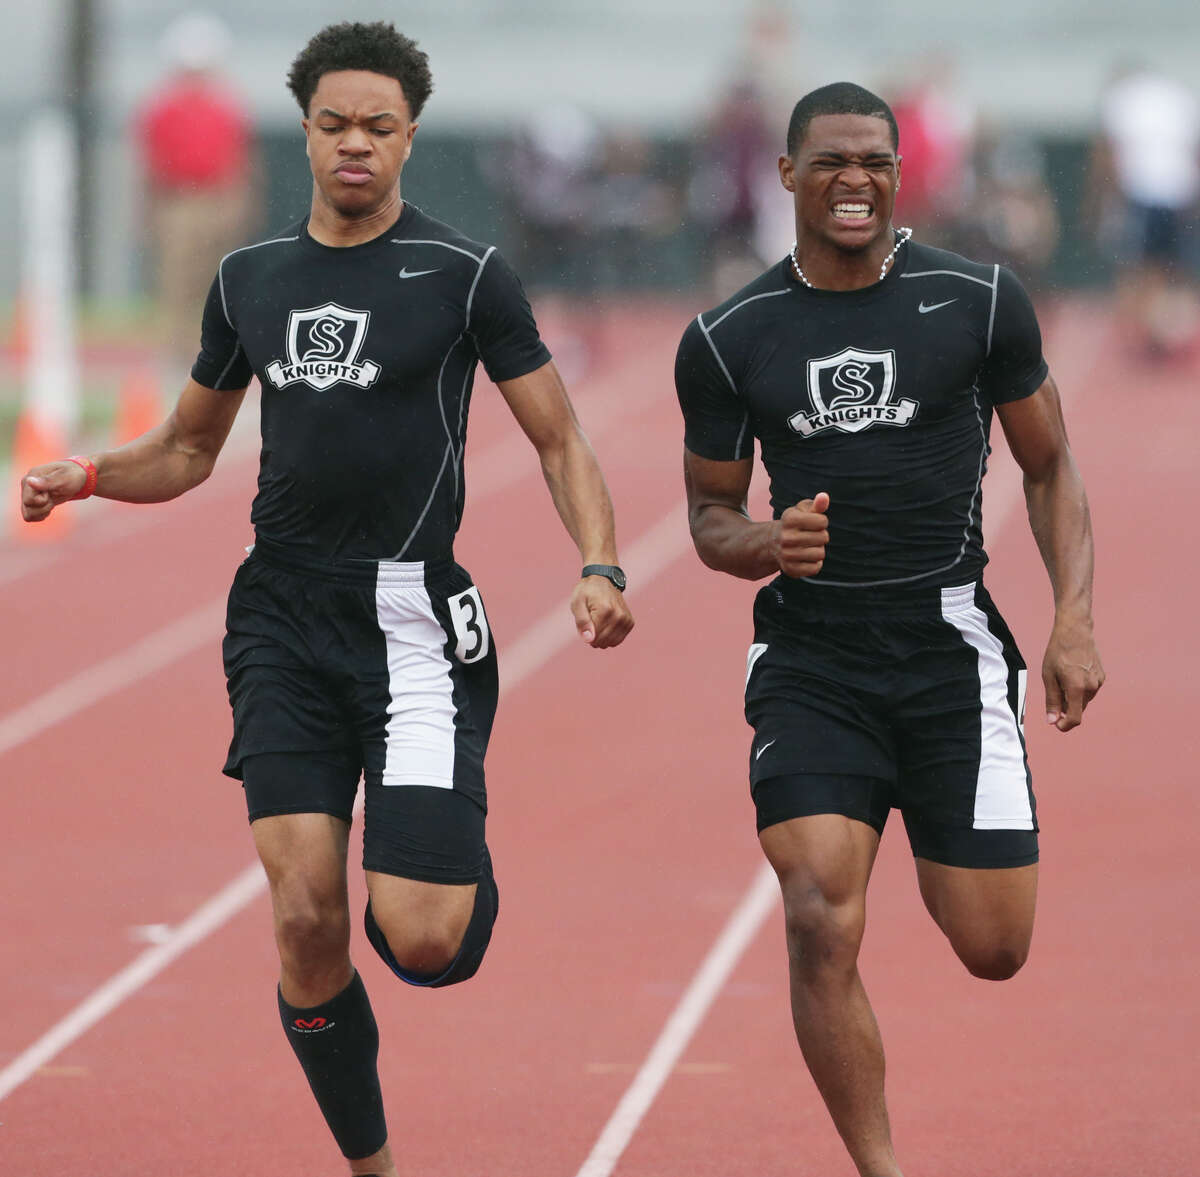 Steele sprinter Andrew Hudson (left) beats teammate Bryson Denley by a hundredth of a second in the 100 meter race as districts 25/26-6A and 27/28-6A hold area track meets at Gustafson Stadium on April 24, 2015.